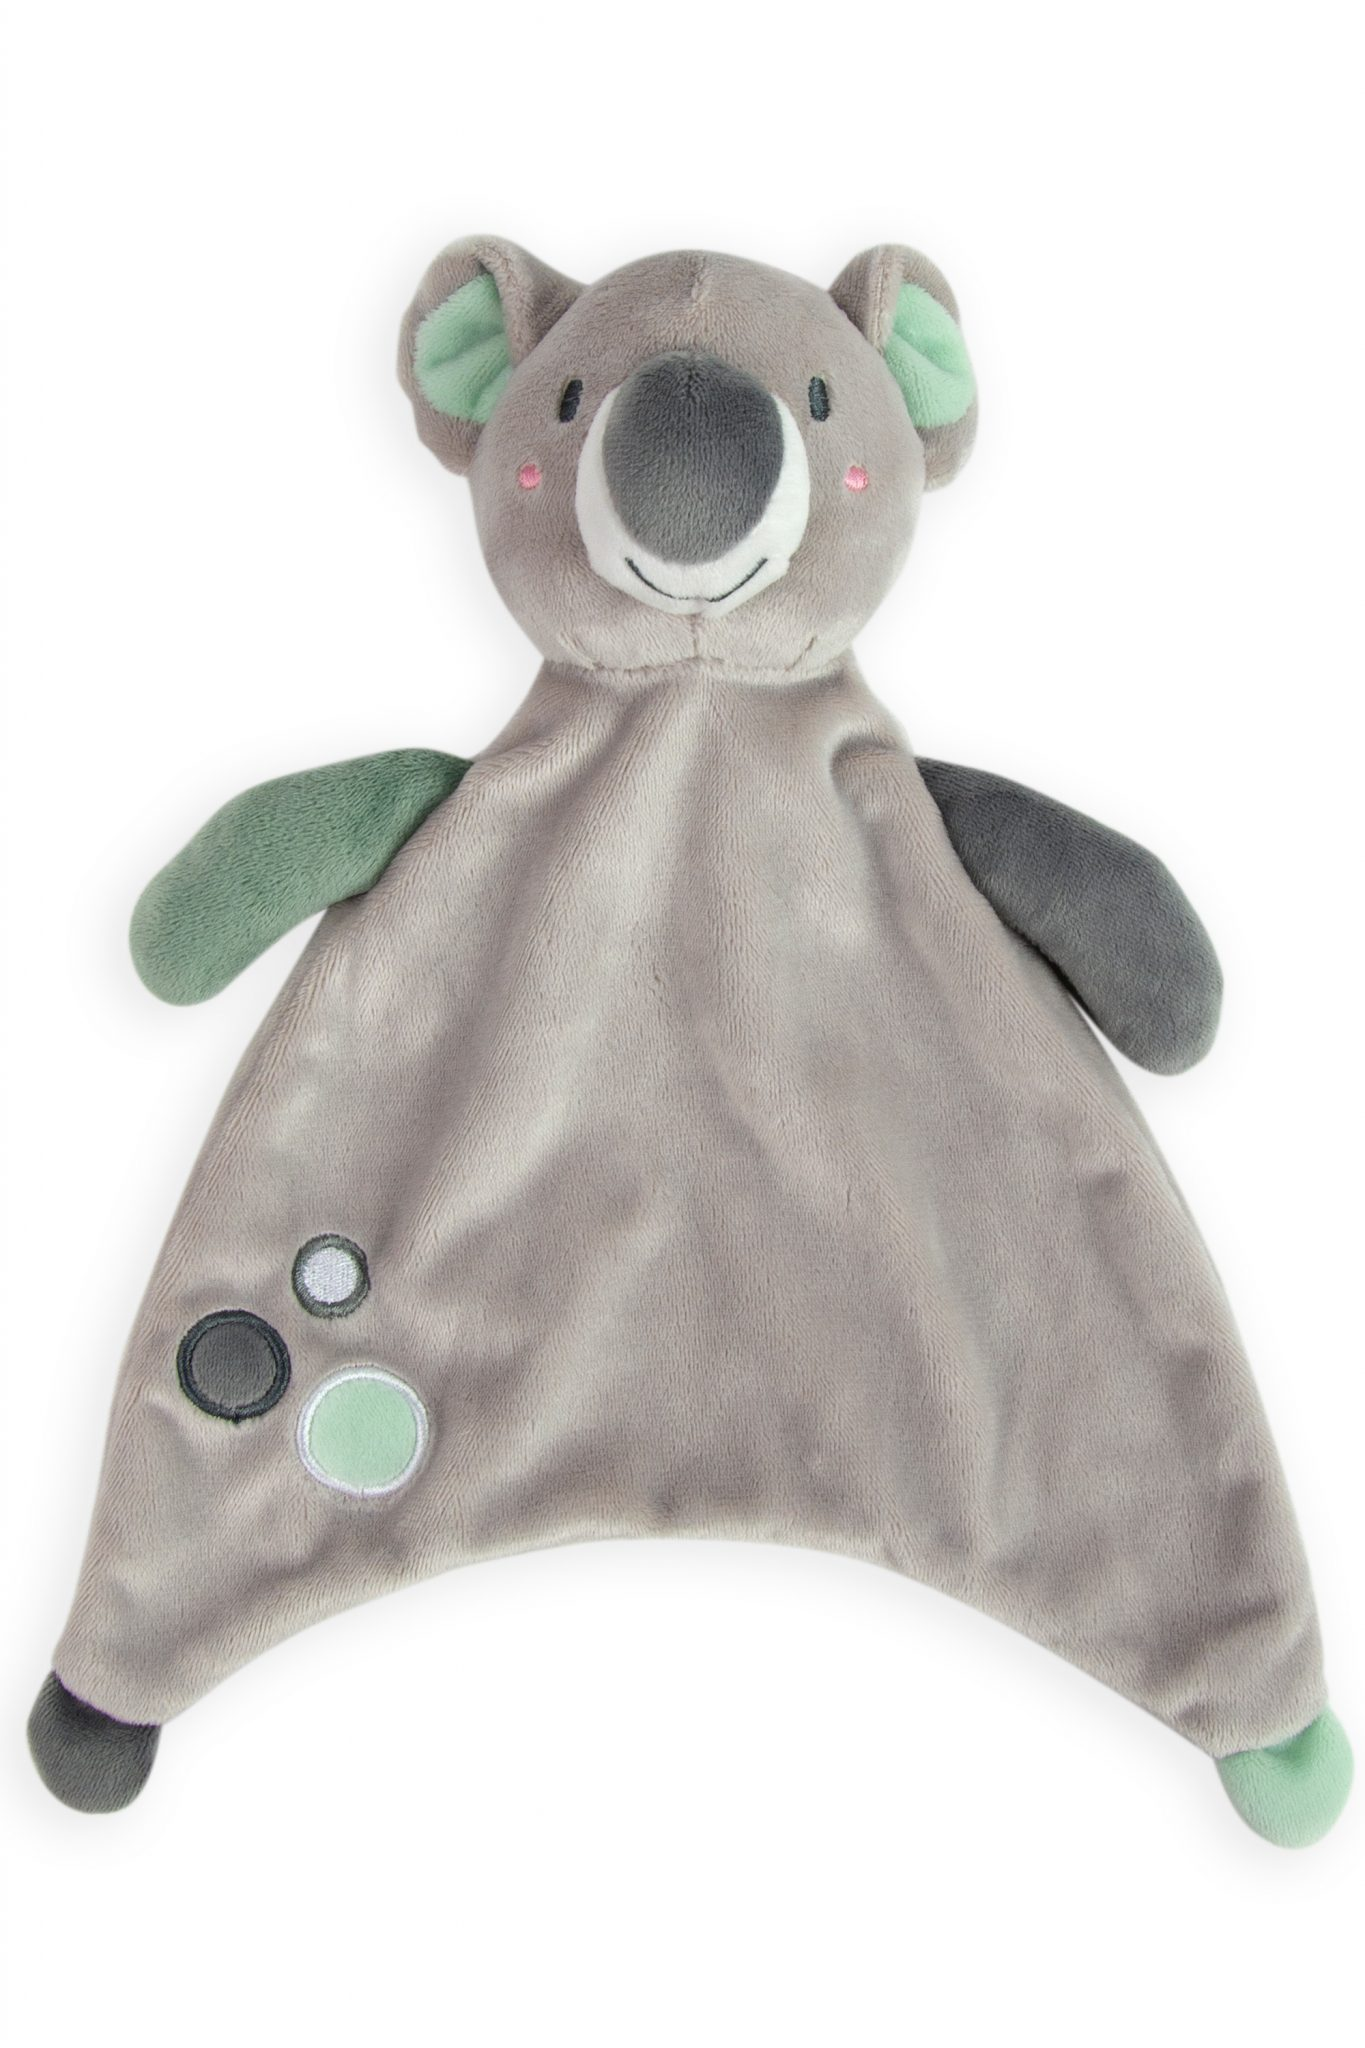 Comforter lovie toy in grey and mint koala. Sleeping aid for babies and toddlers. super soft. great gifts. moonlight baby sleep. melbourne